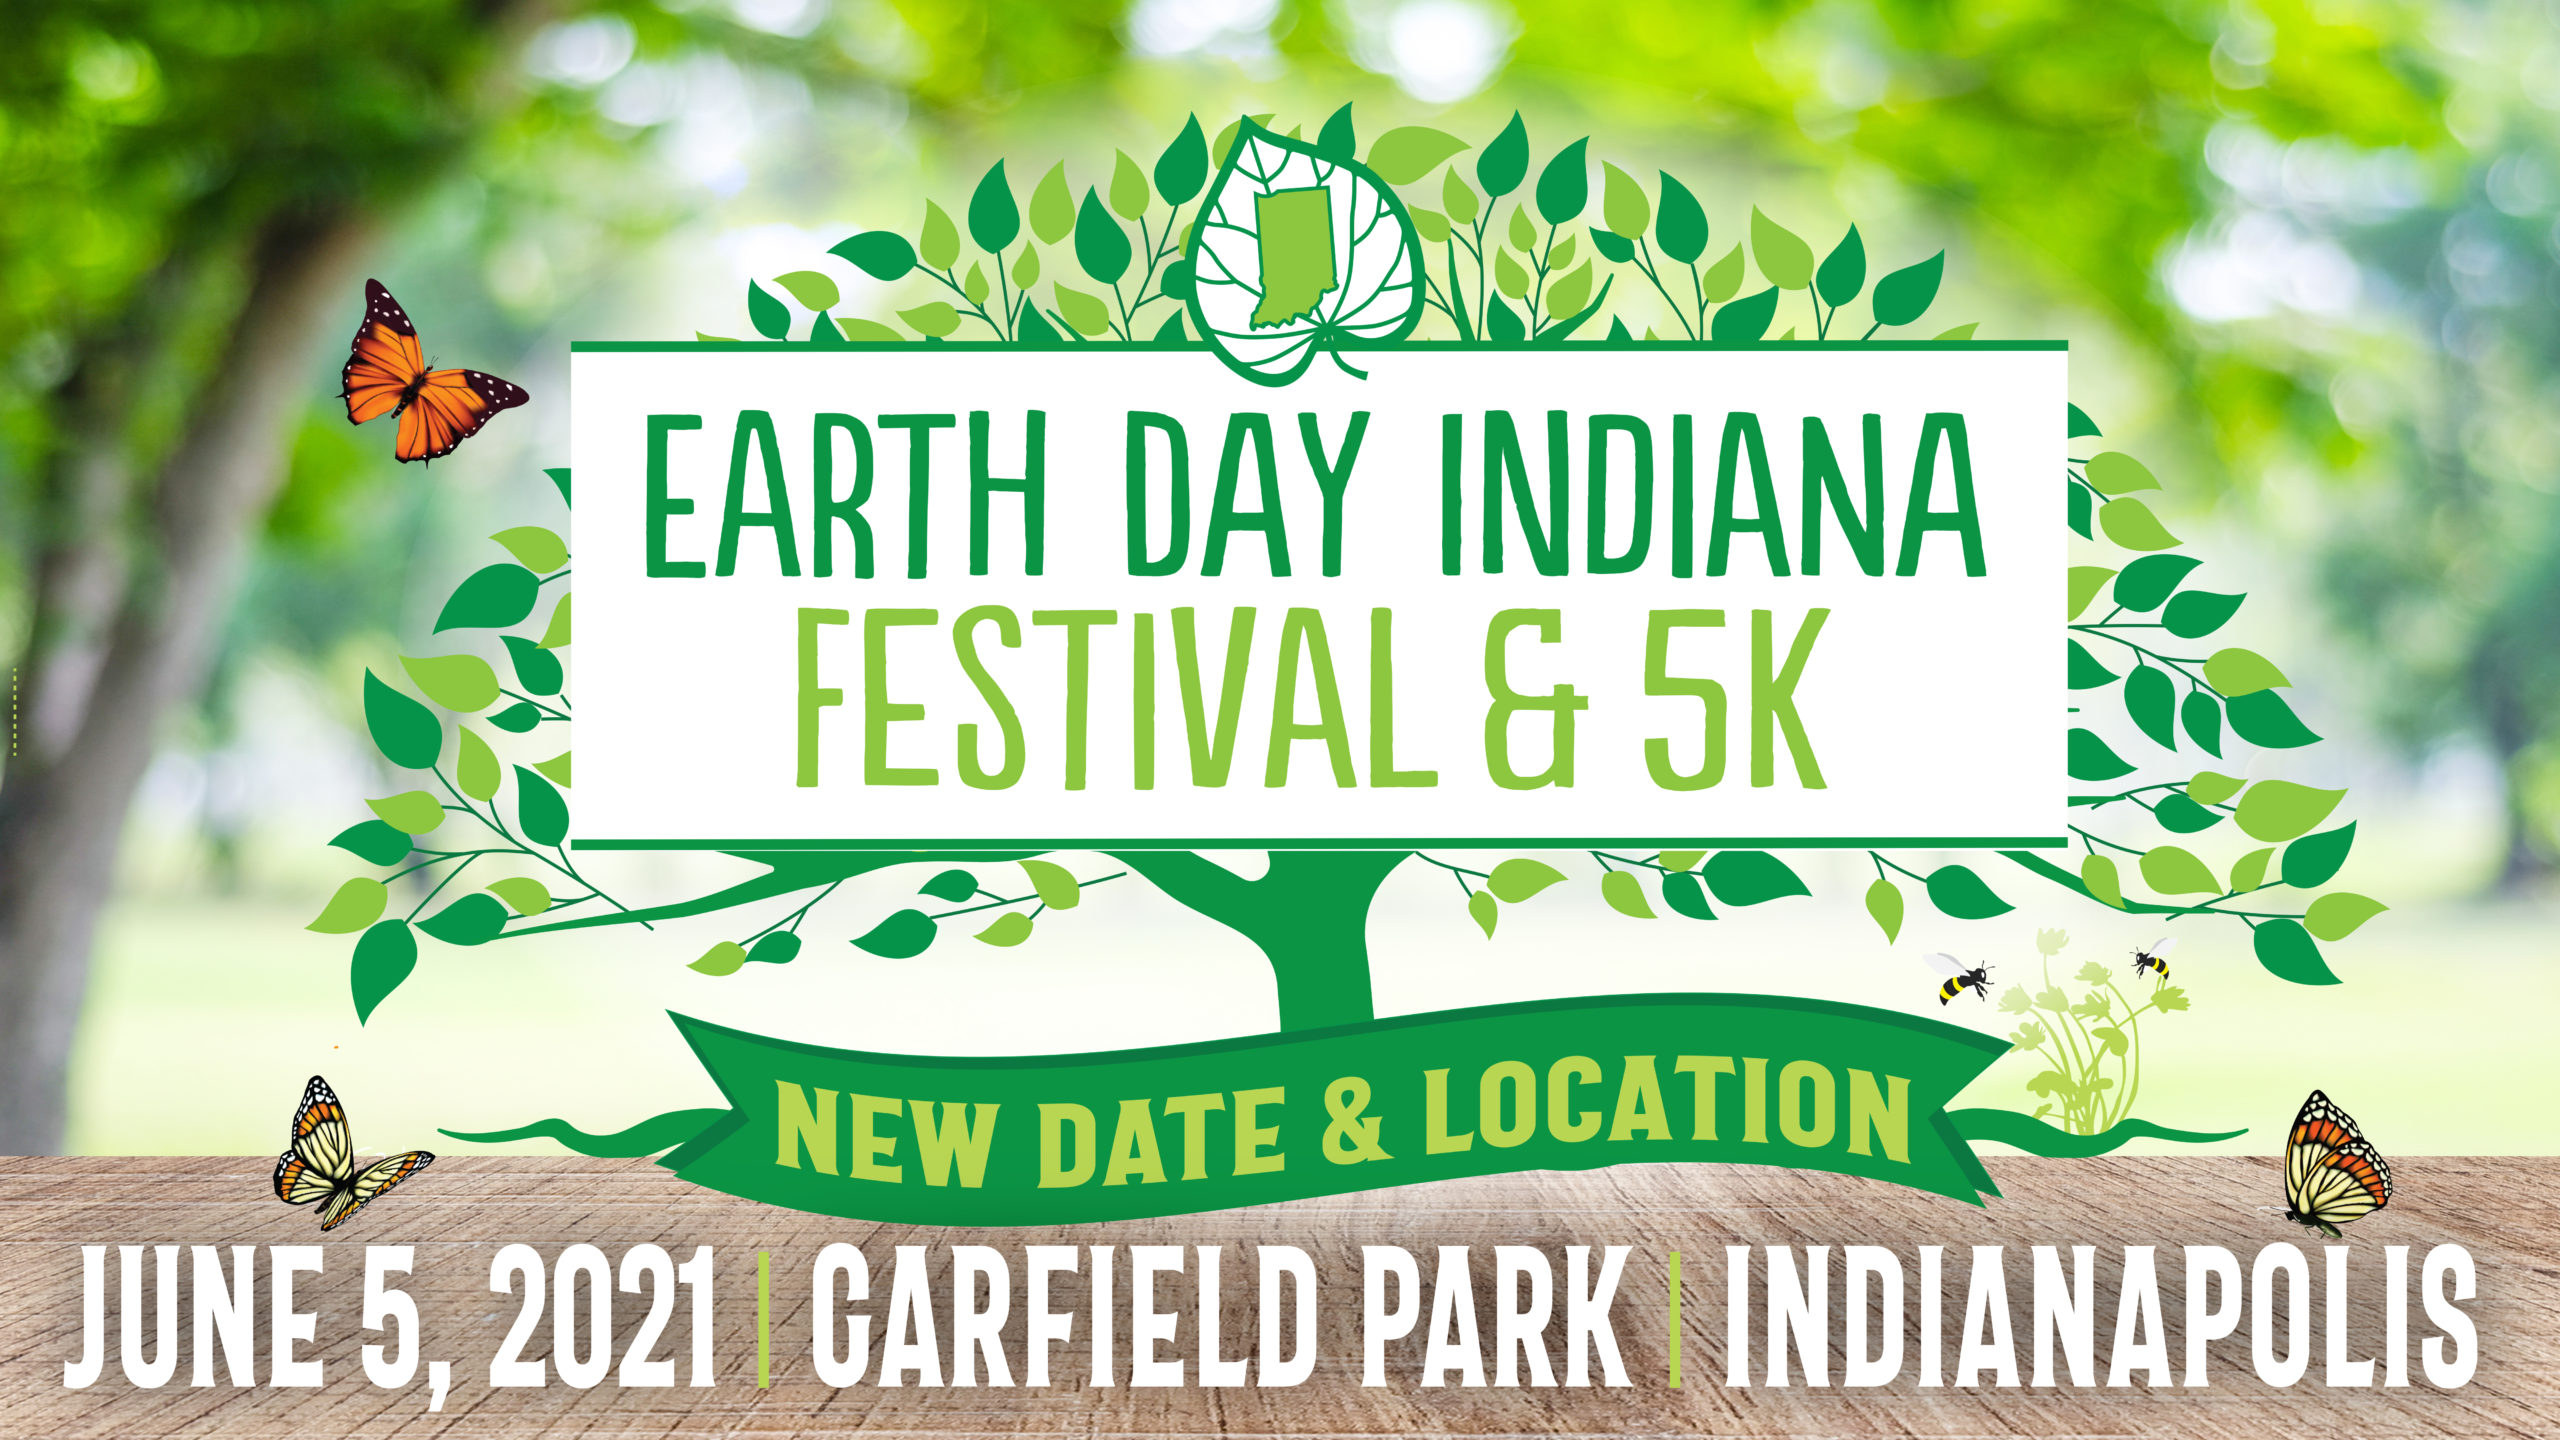 Earth Day Indiana Festival & 5K